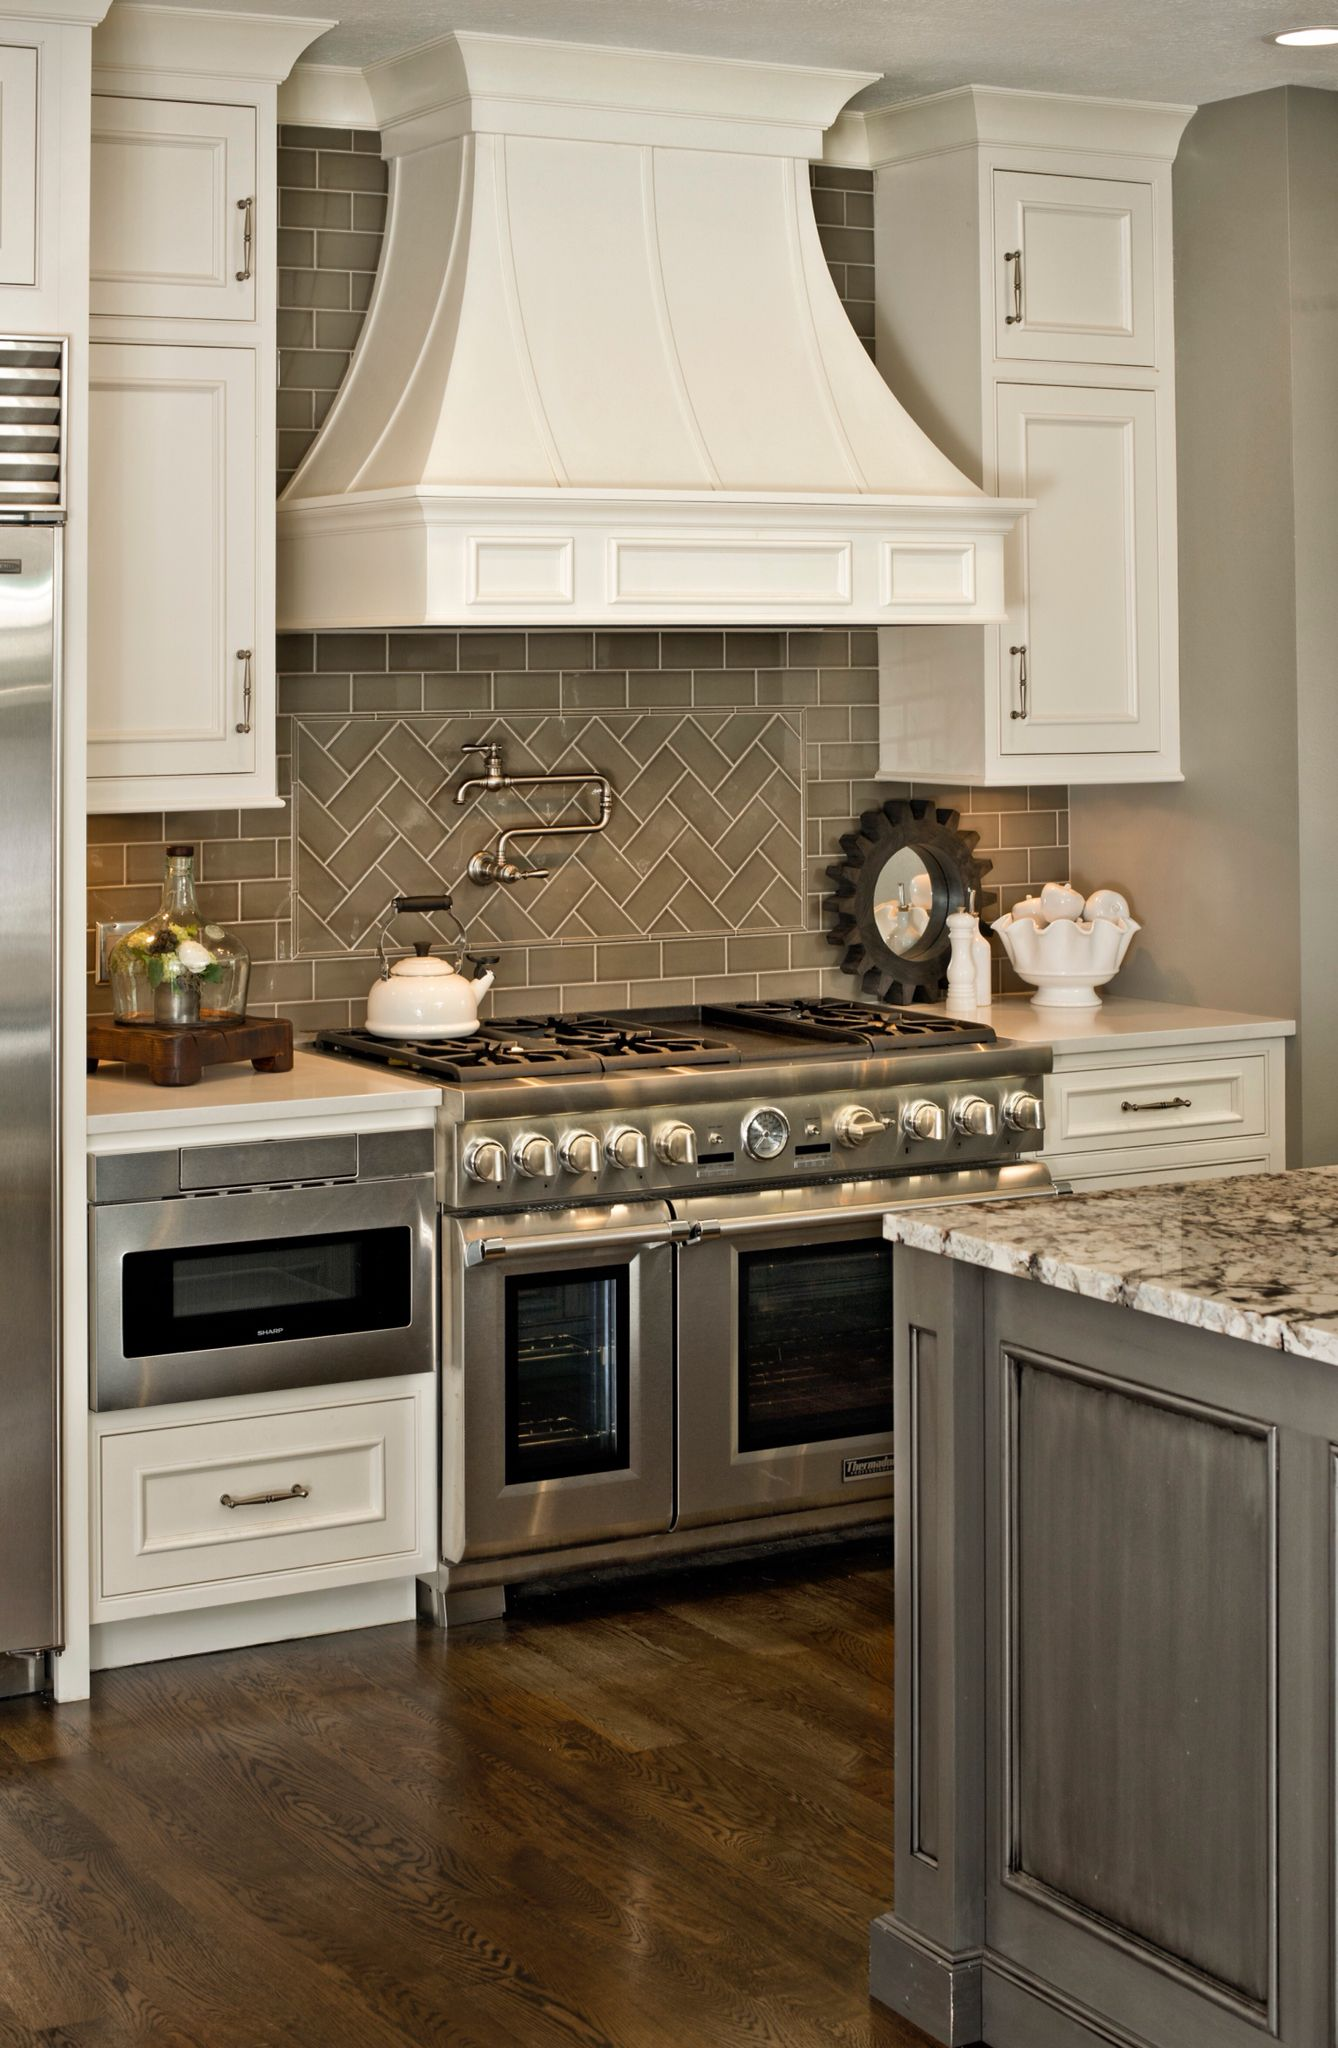 Best Gray And White Kitchen With Herringbone Subway Tile 400 x 300